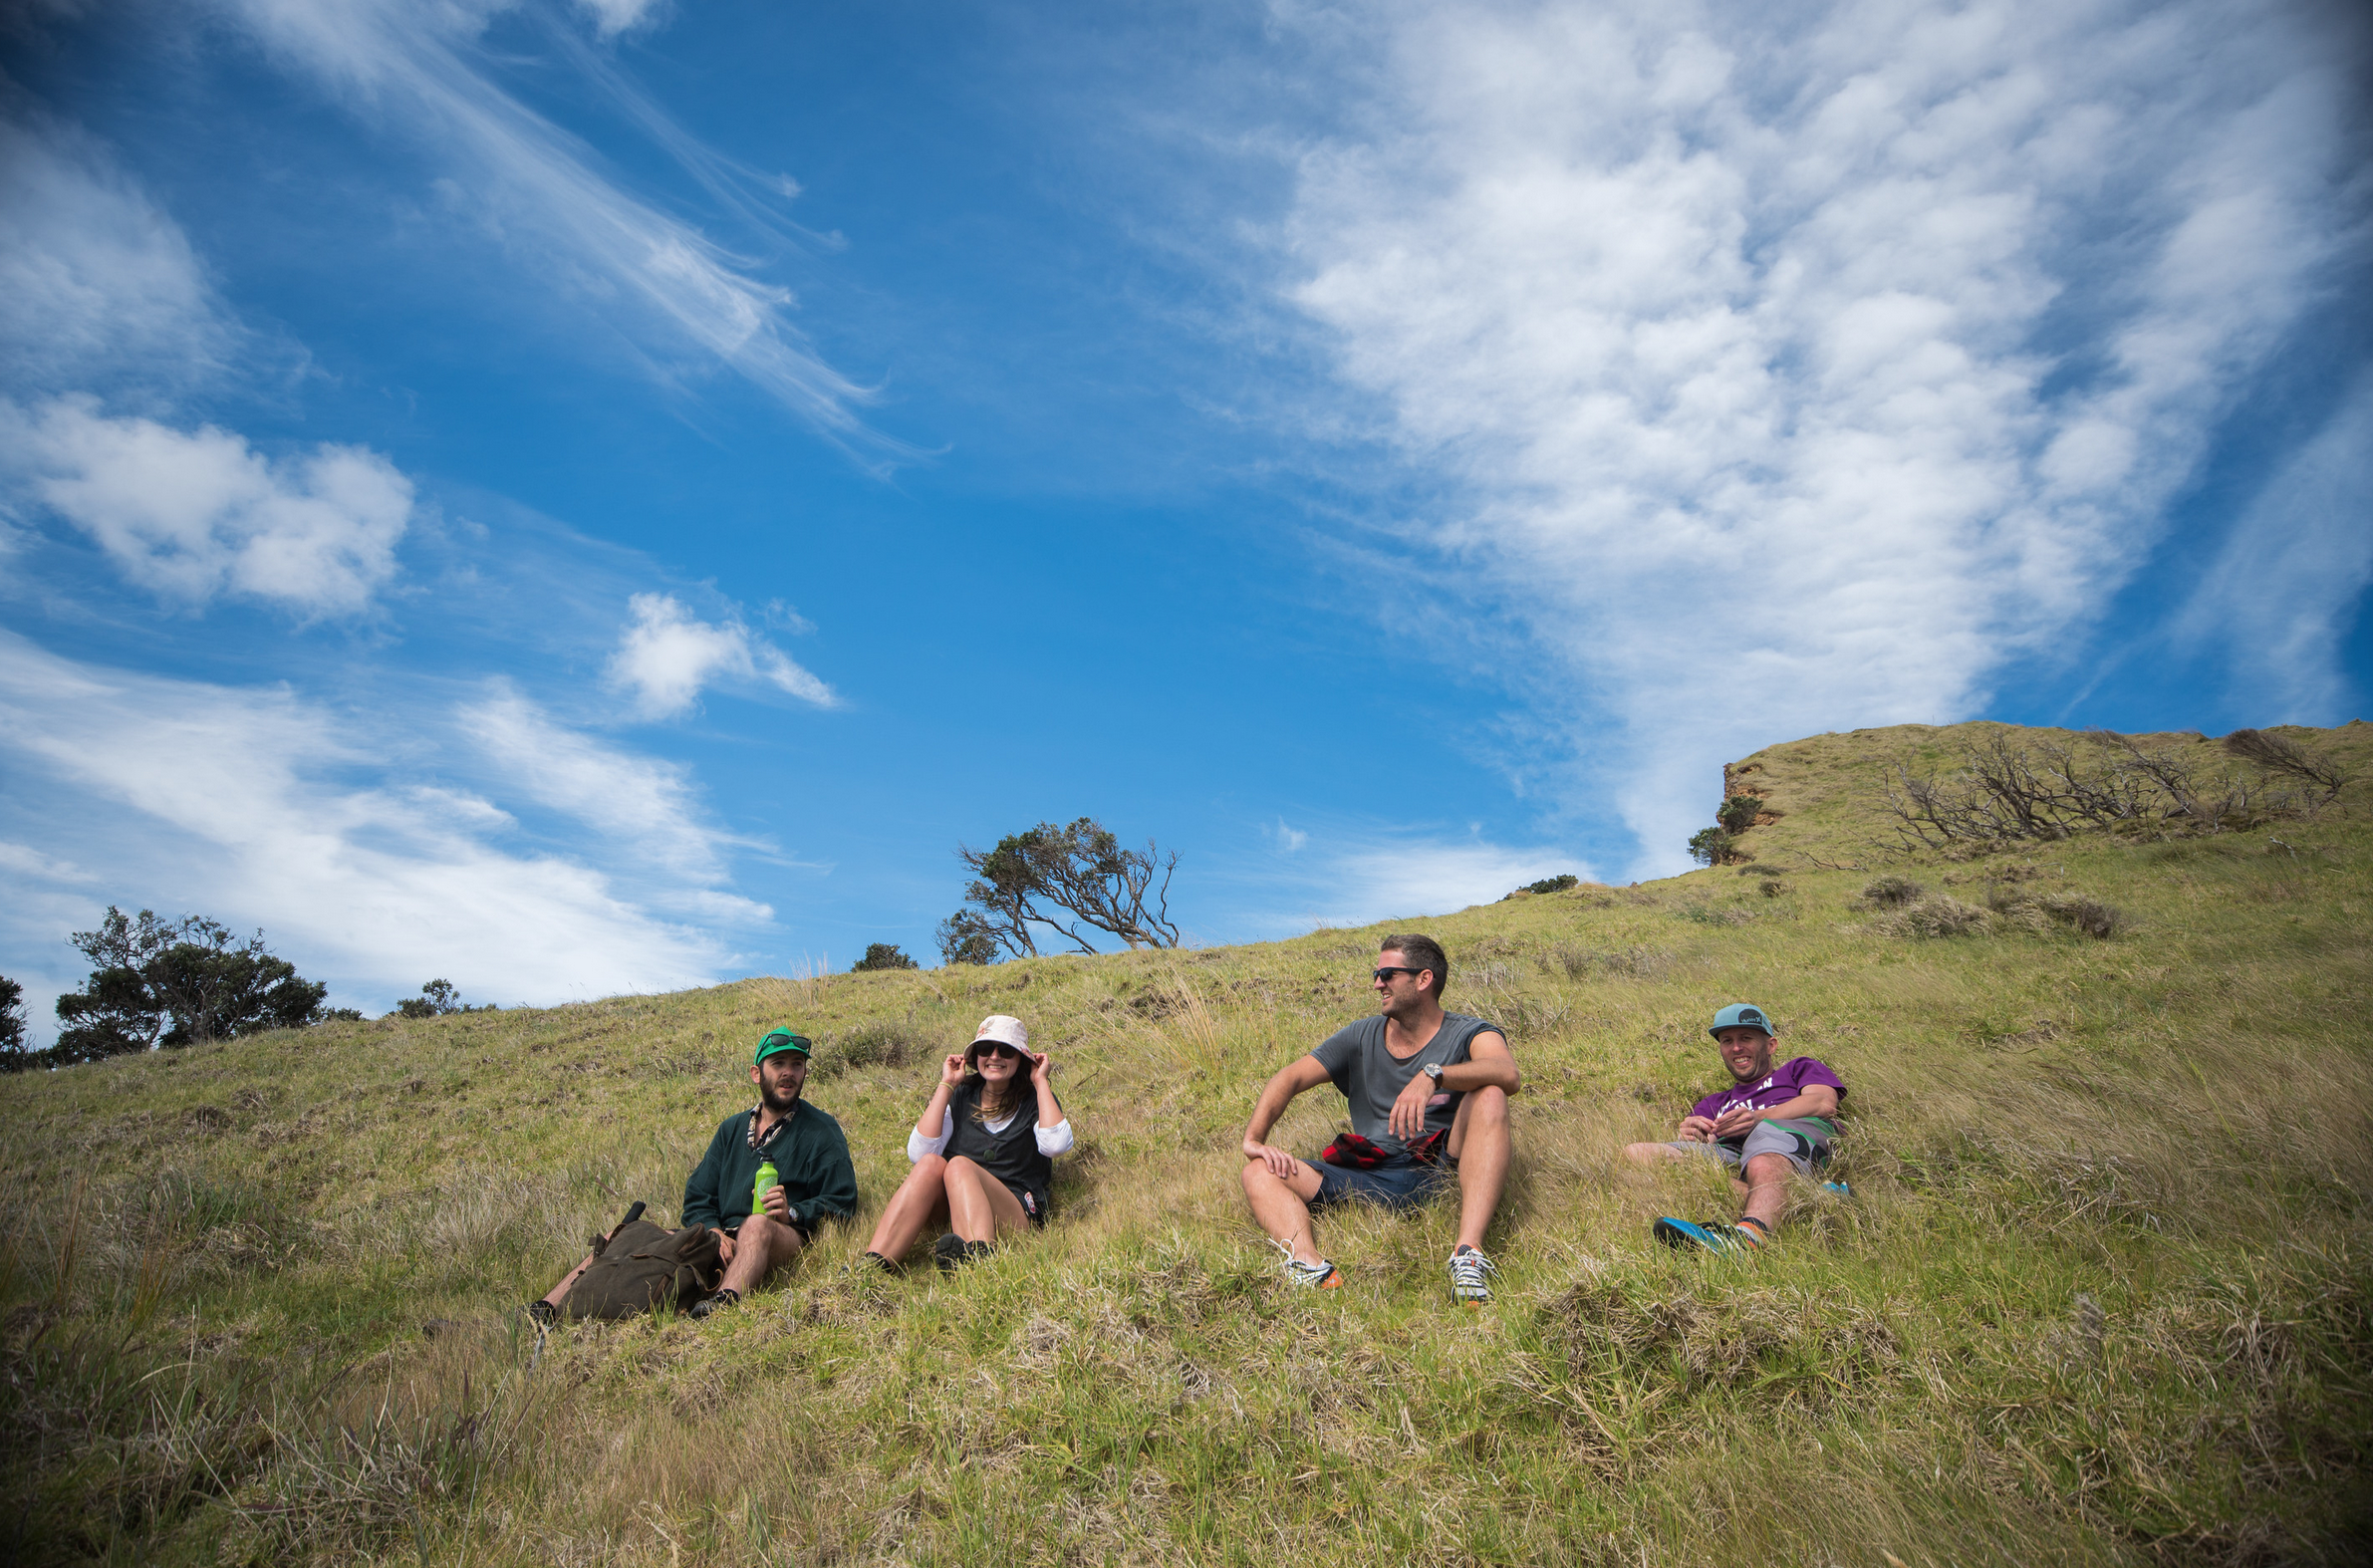 Location scouting along the cliff-edges on Great Barrier Island (l-r) Mark, Sophi, Owain, Owen. Photo: Glenn McLelland,  Aerial Vision .